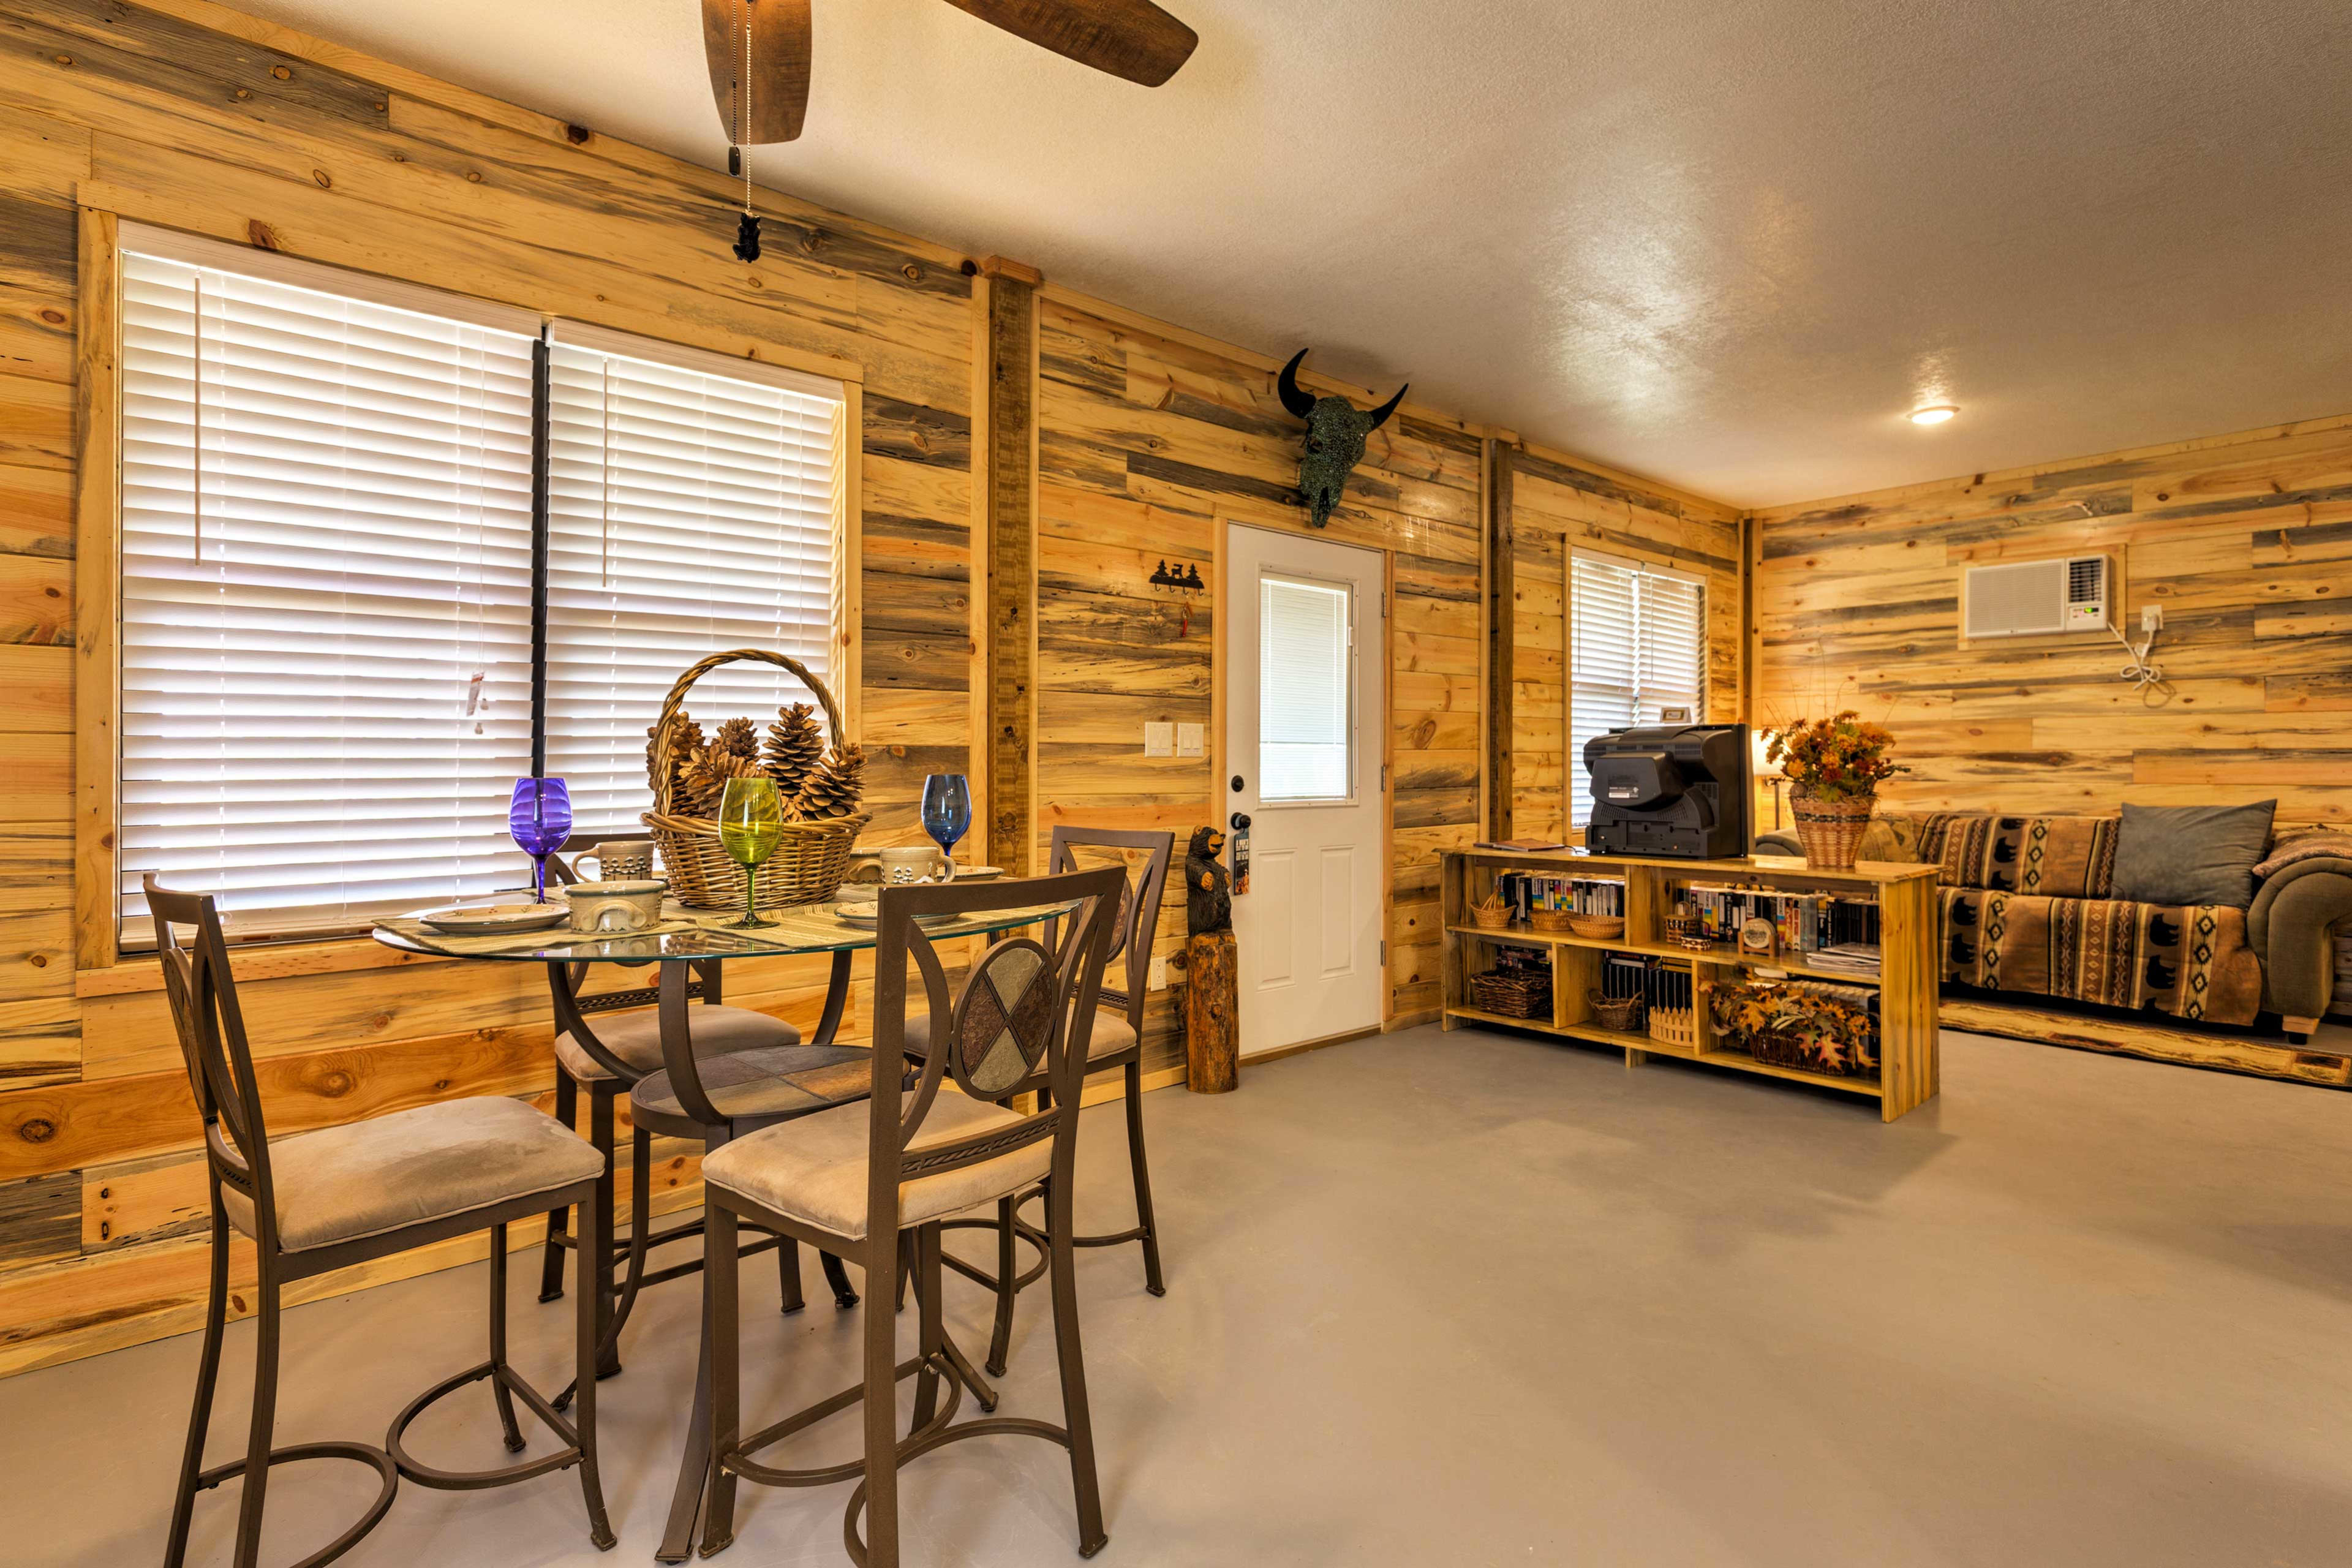 Step inside to make yourself at home in the cozy, rustic house.